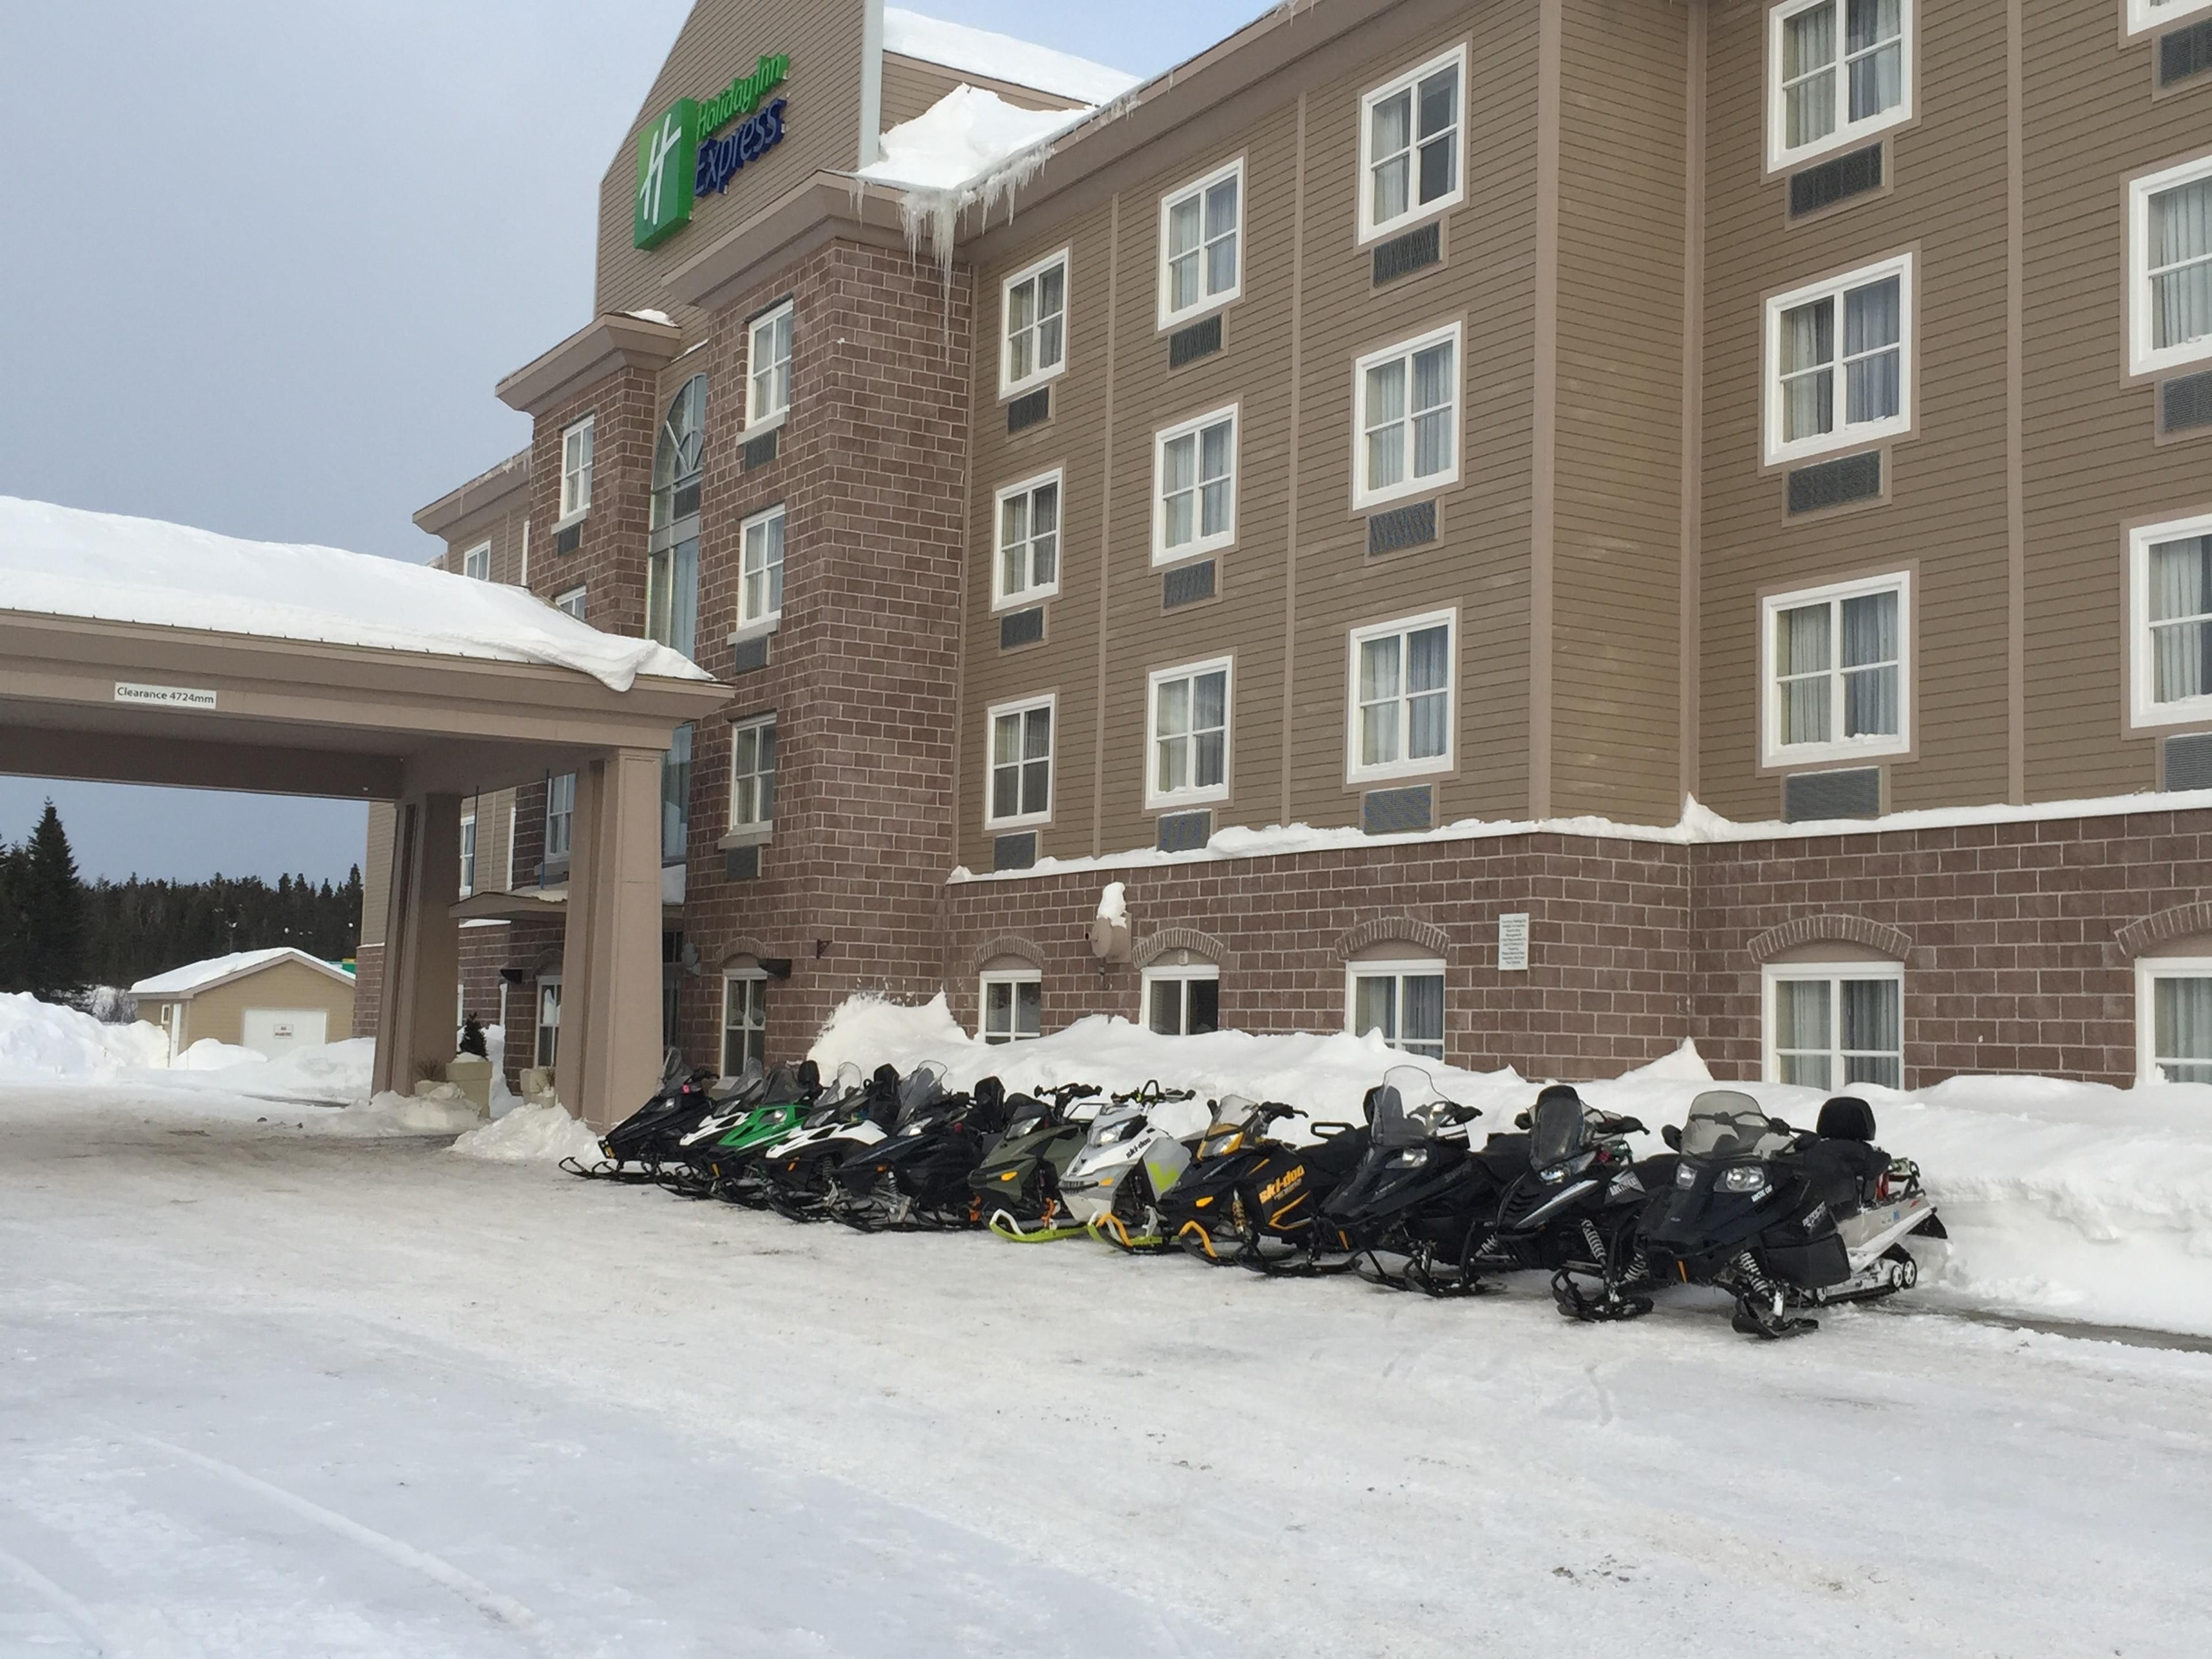 Holiday Inn Express Deer Lake, the Snowmobile Hub of Newfoundland!